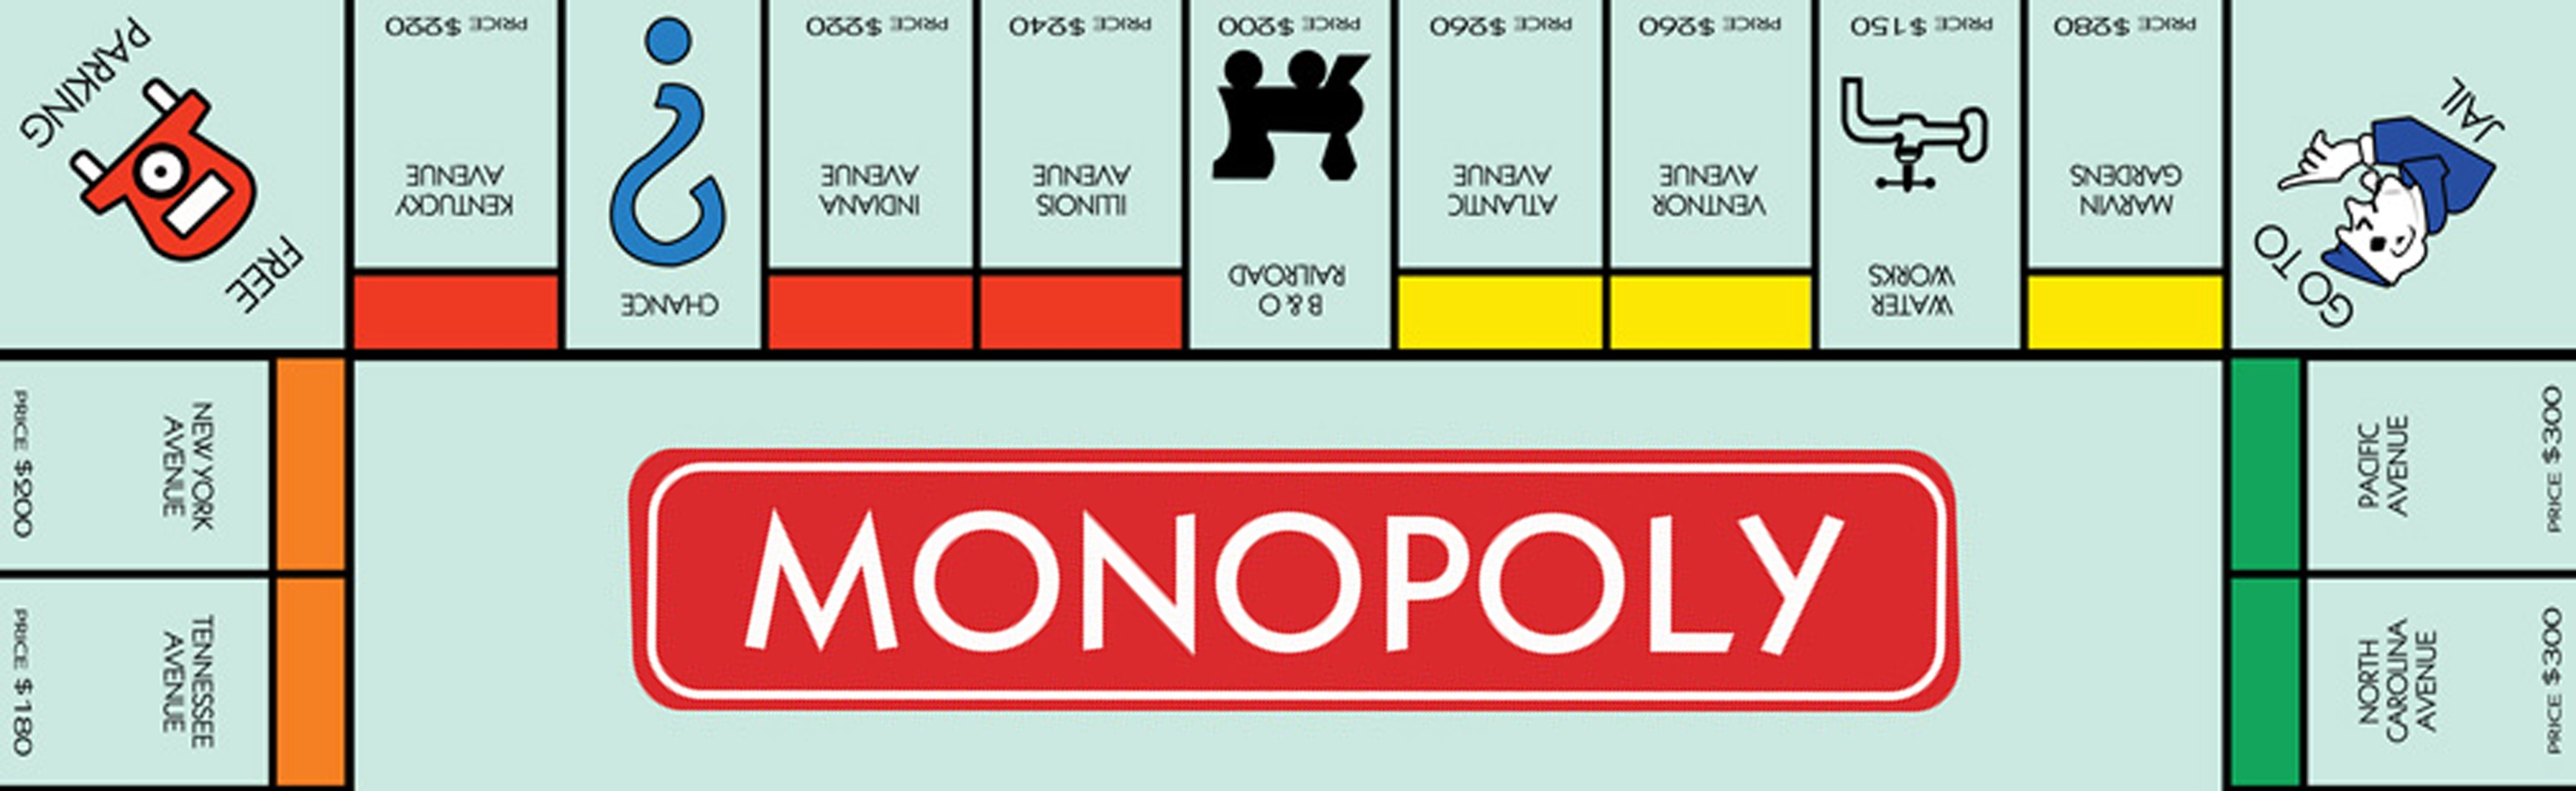 Monopoly Board Pub Crawl | Raiders Of The Lost Pubs - Get Out Of Jail Free Card Printable